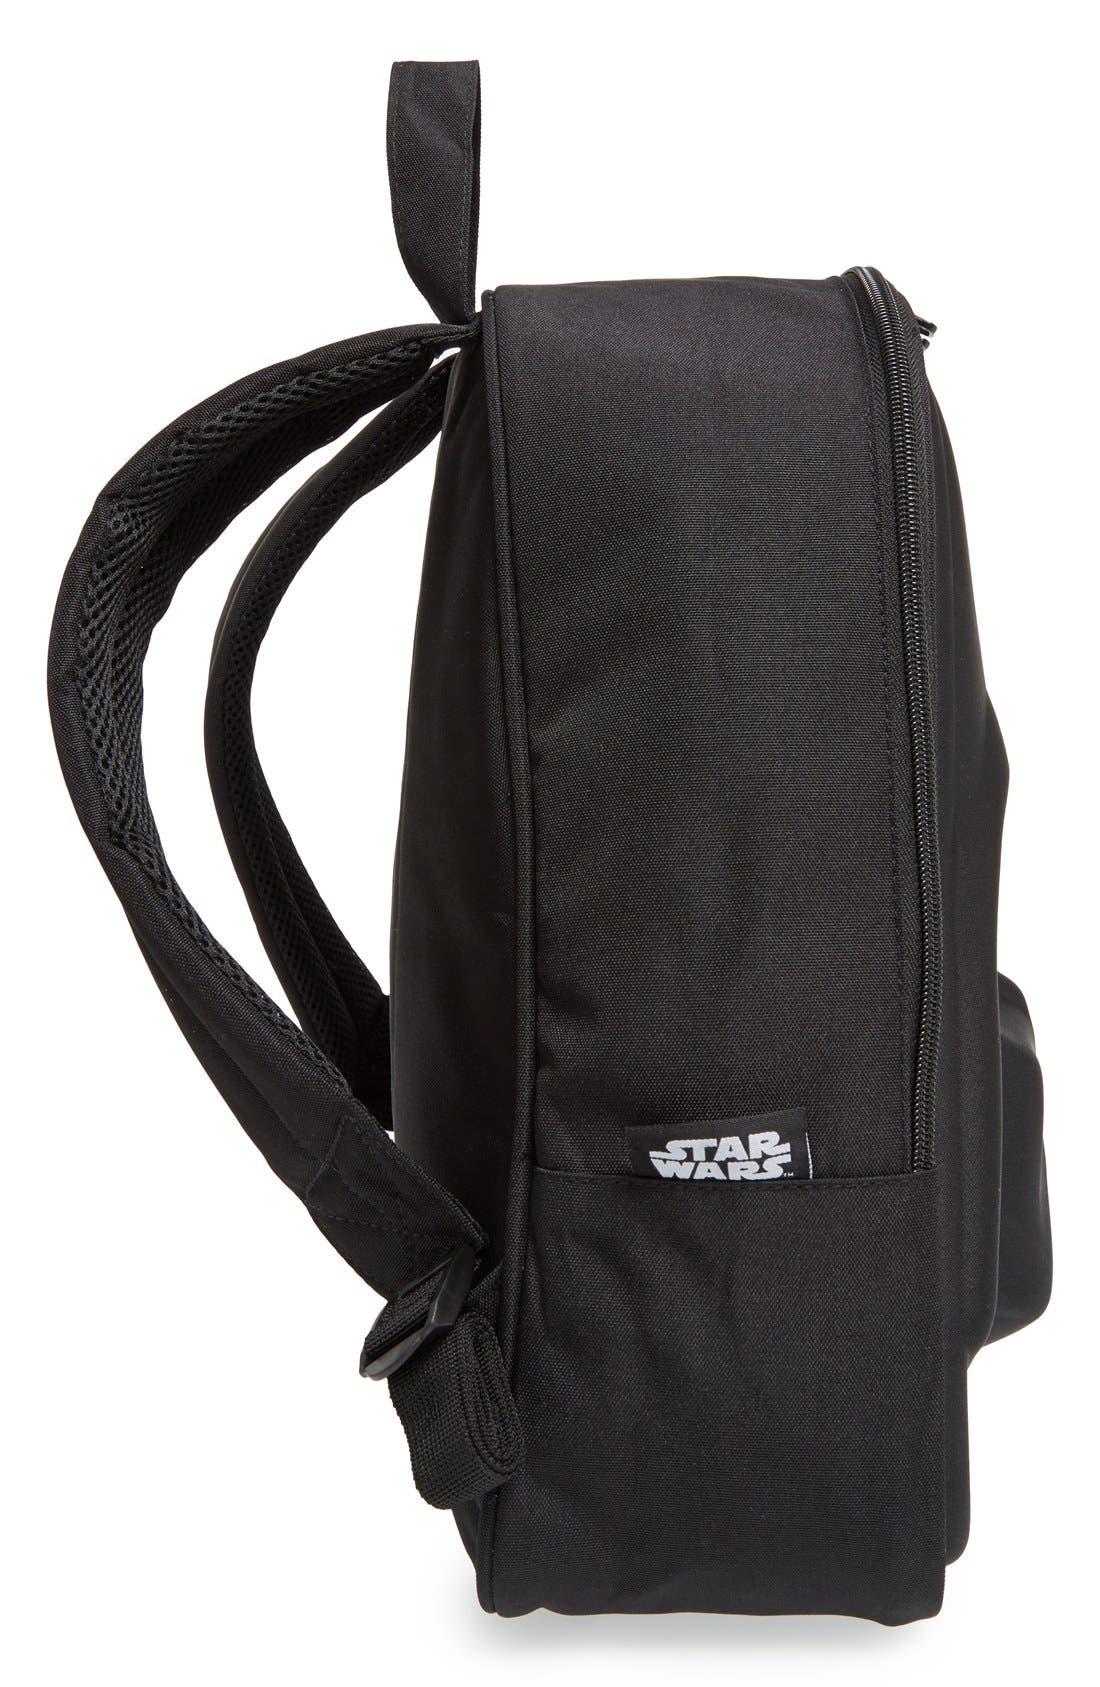 'Star Wars<sup>™</sup> - Darth Vader' Backpack,                             Alternate thumbnail 4, color,                             001